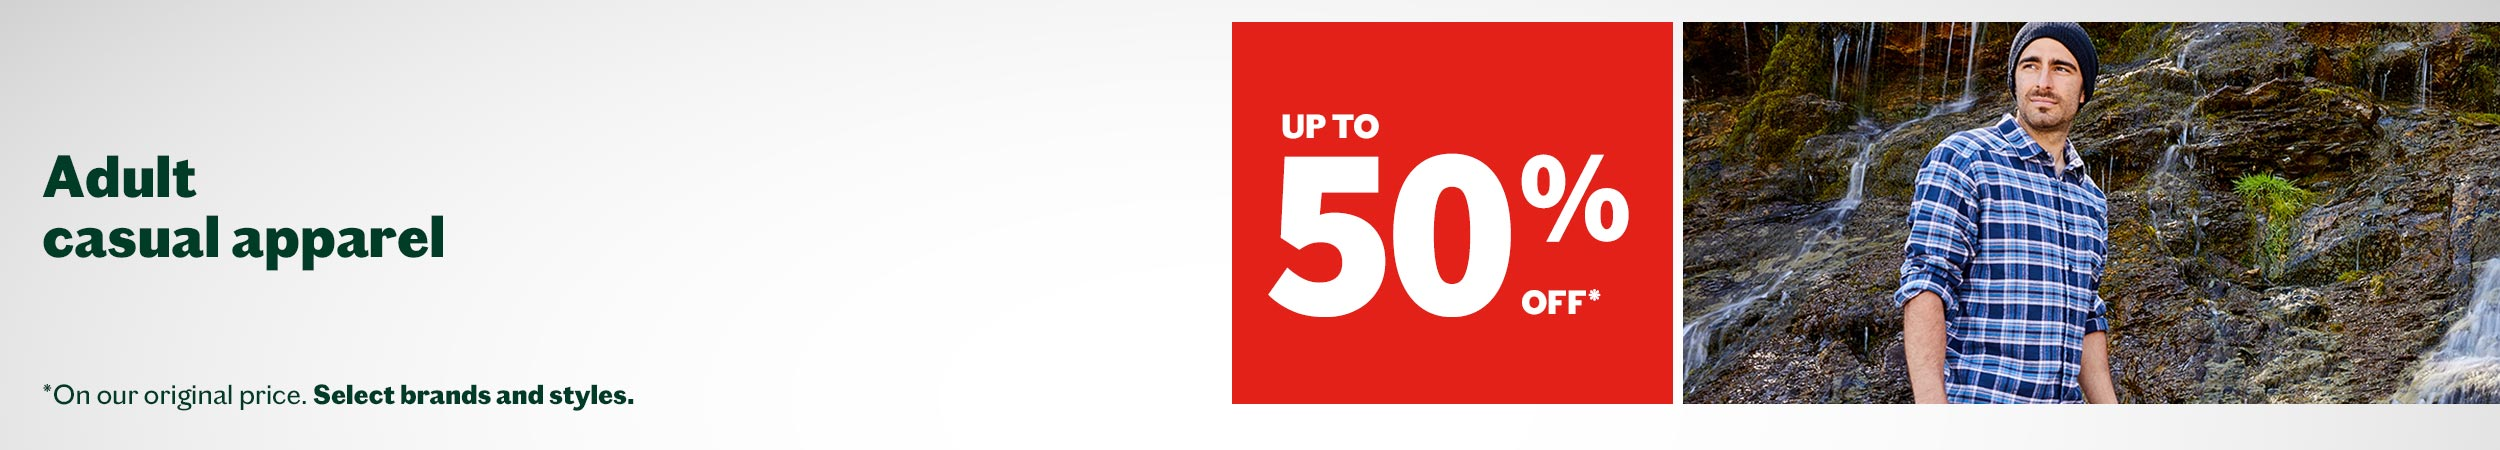 Take up to 50% off adult casual wear